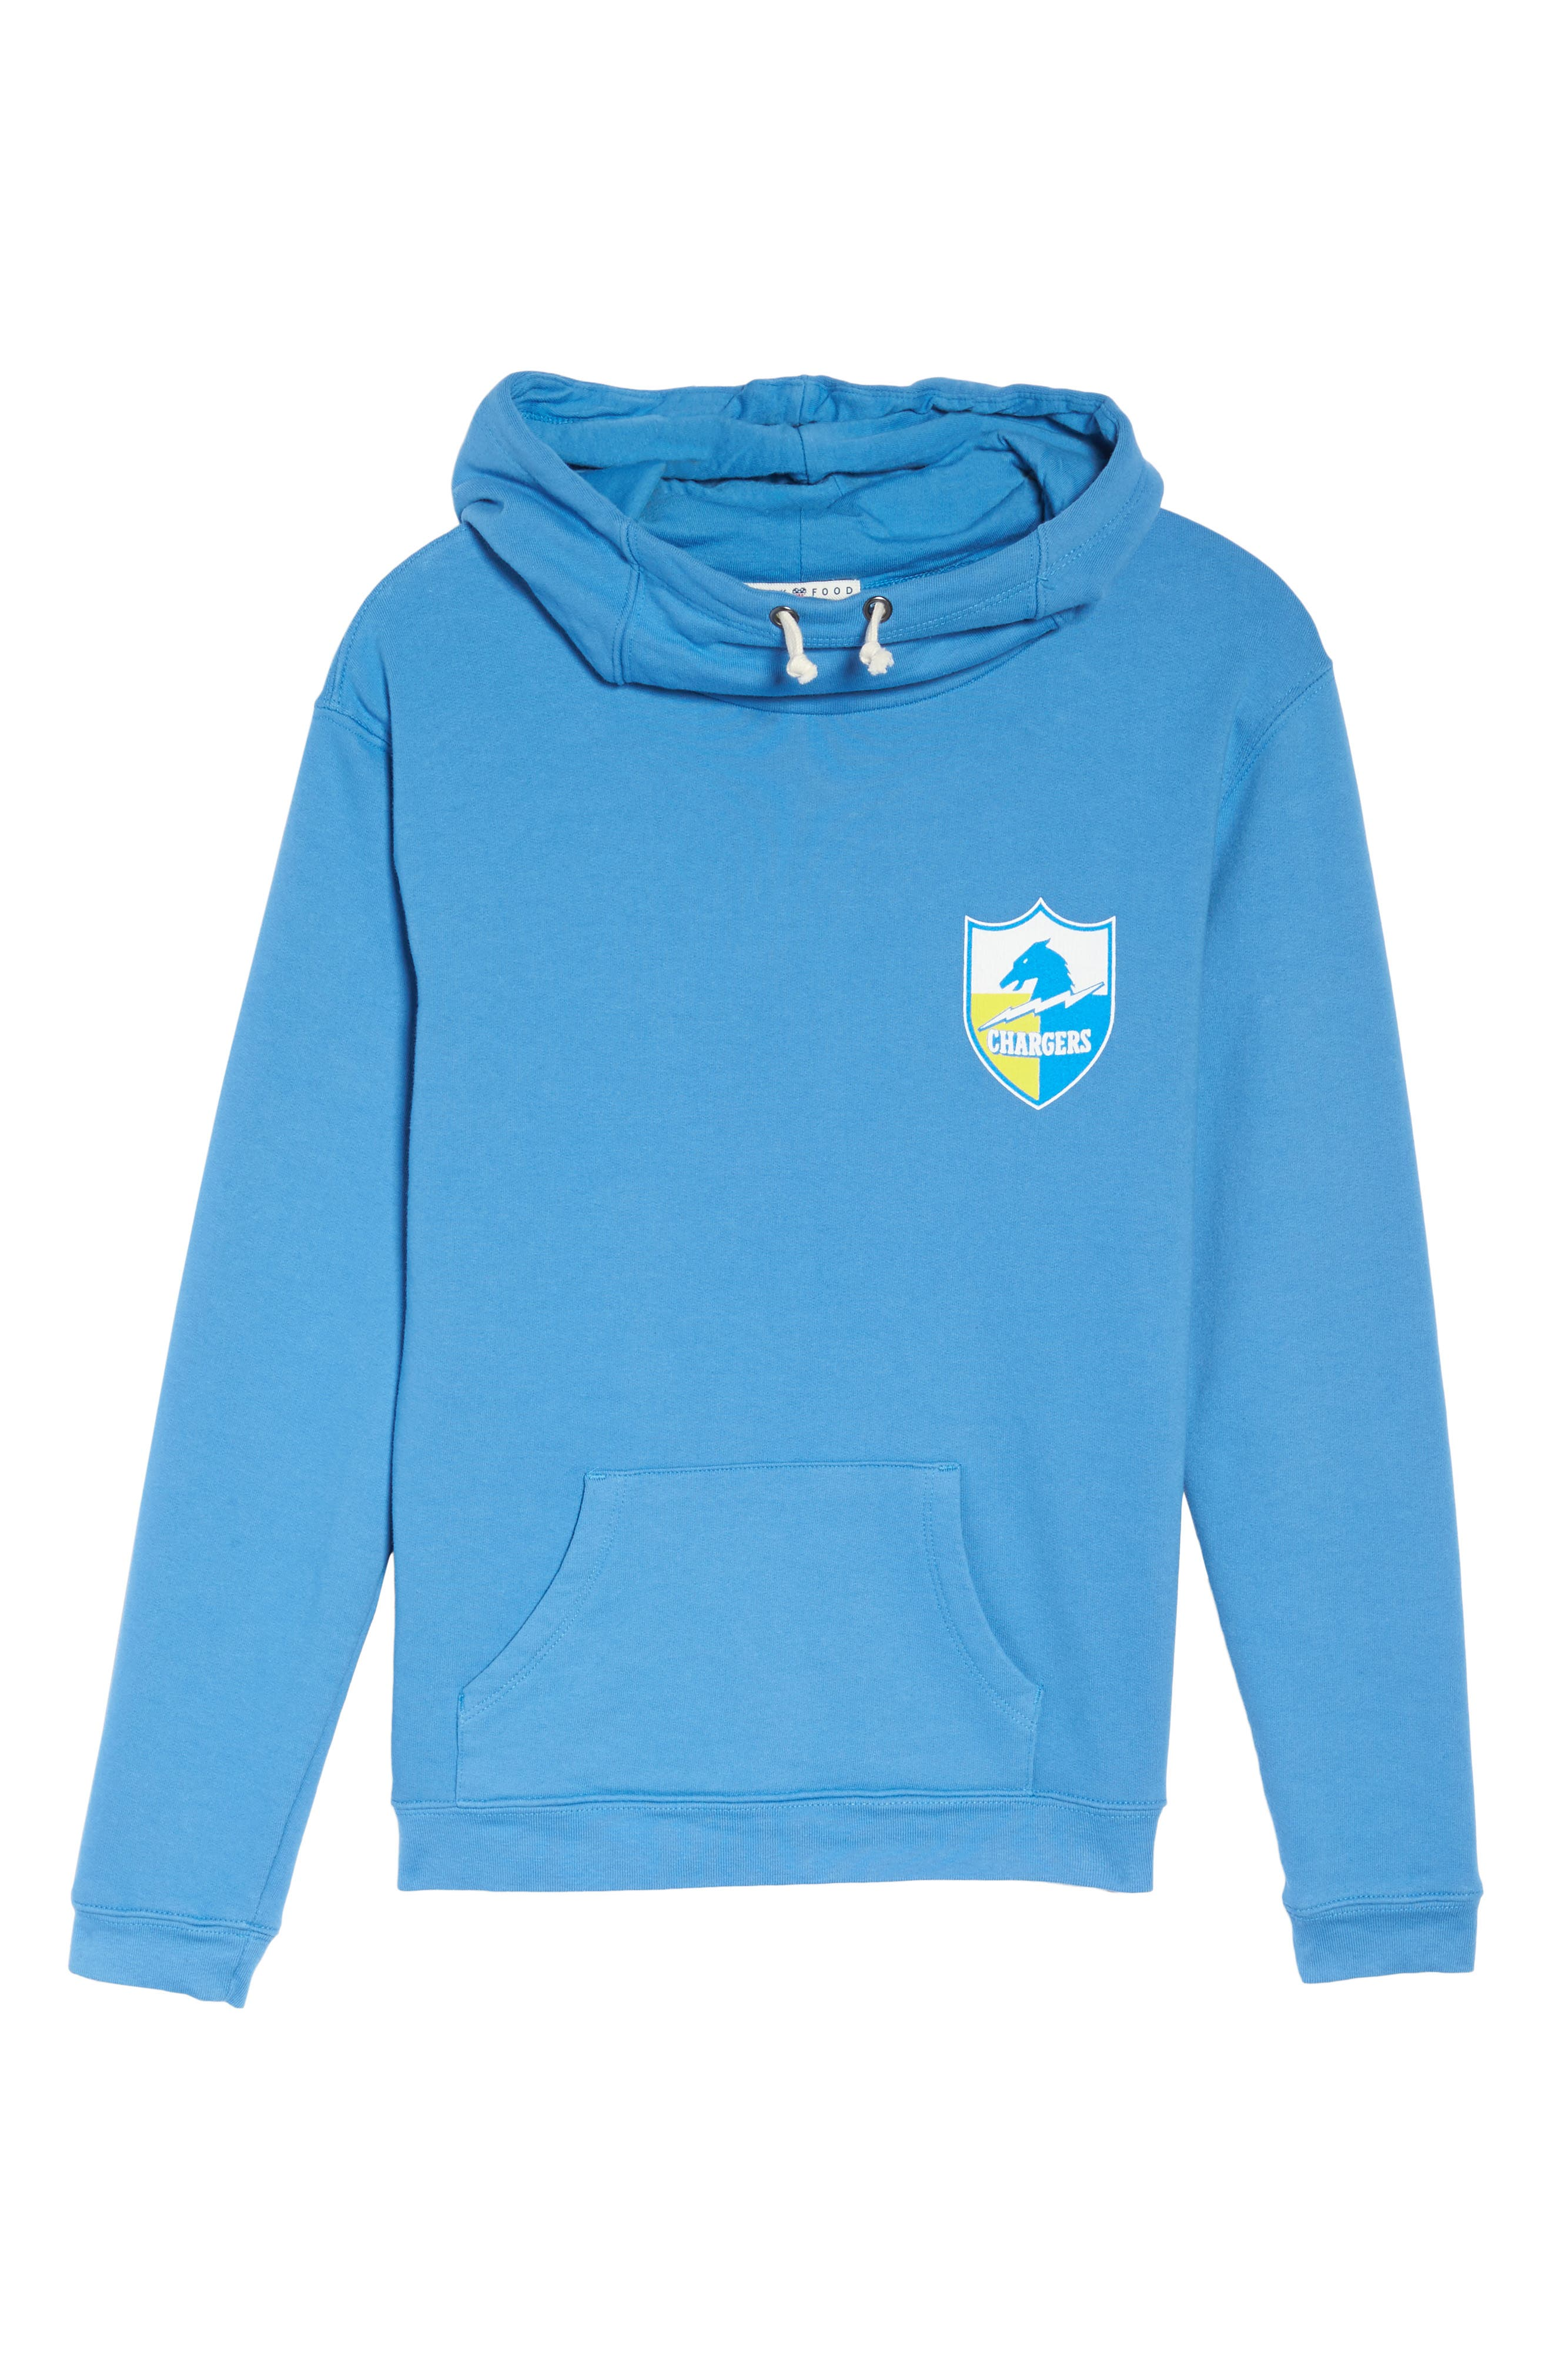 NFL Los Angeles Chargers Sunday Hoodie,                             Alternate thumbnail 6, color,                             422